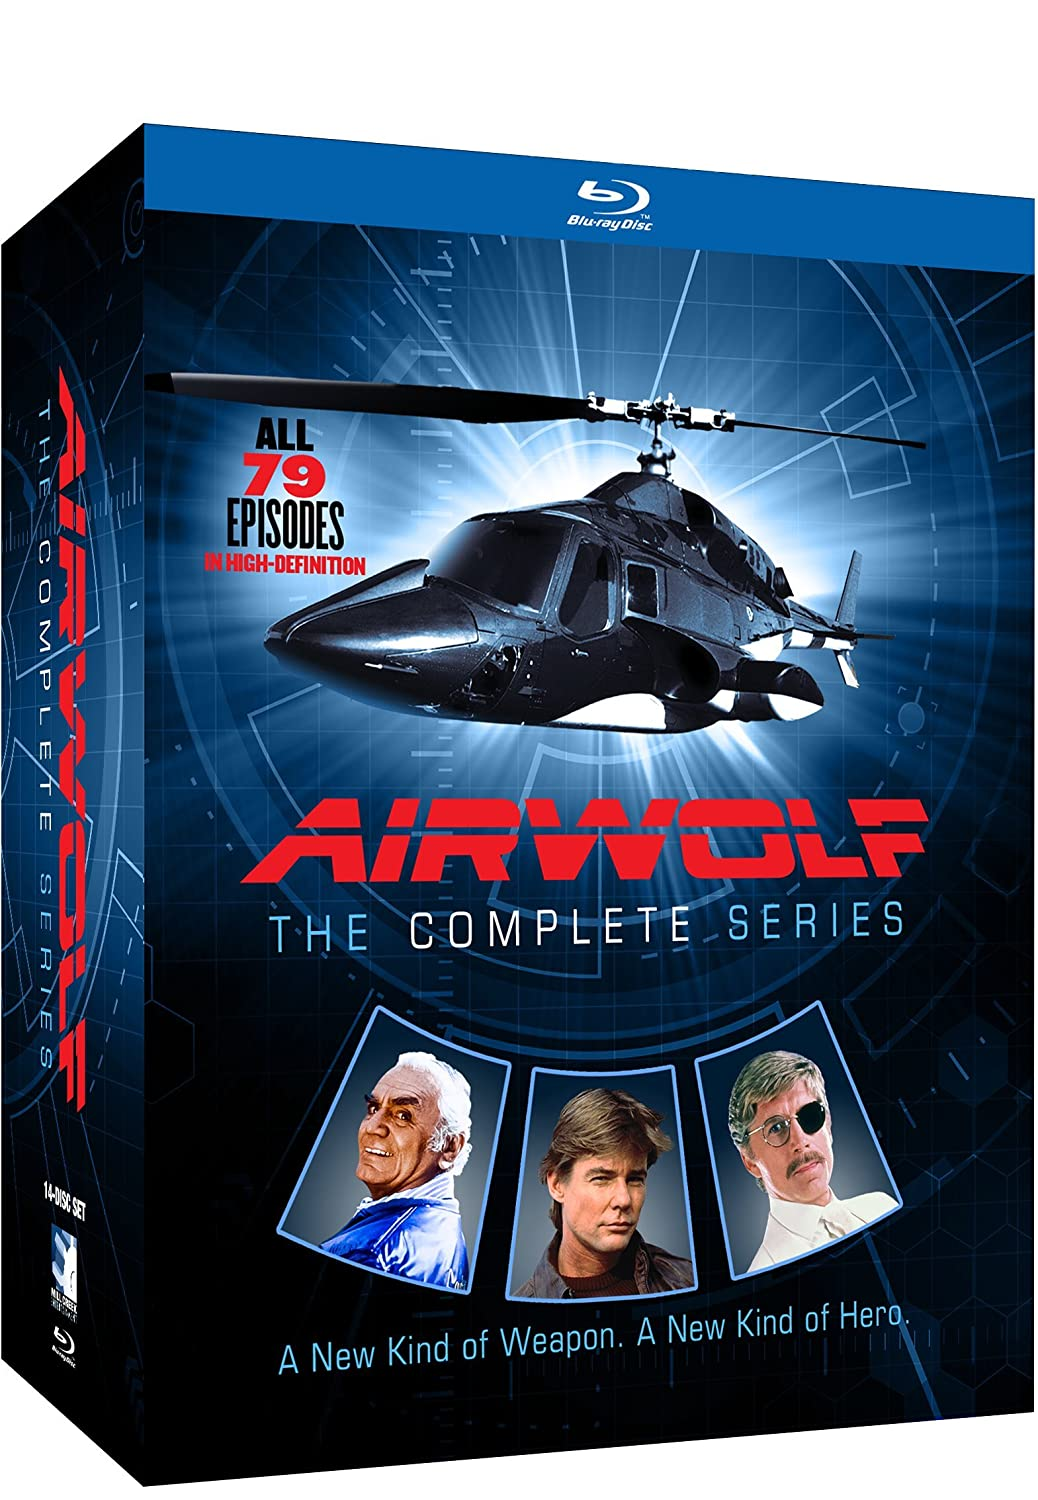 Airwolf - The Complete Series - BD (Blu-ray)